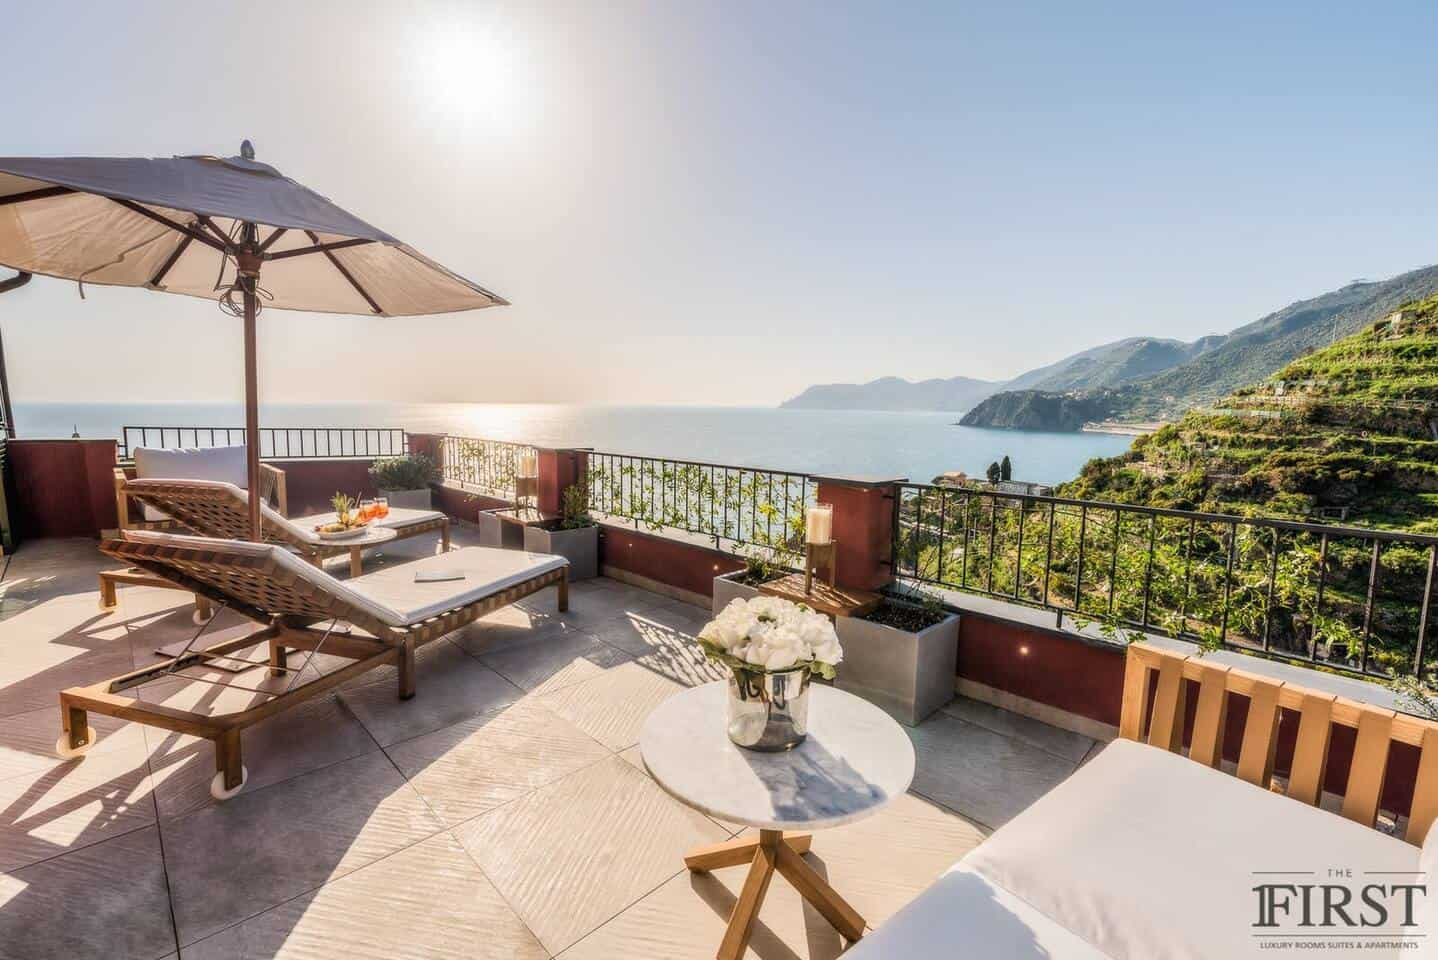 Image of Airbnb rental in Cinque Terre, Italy